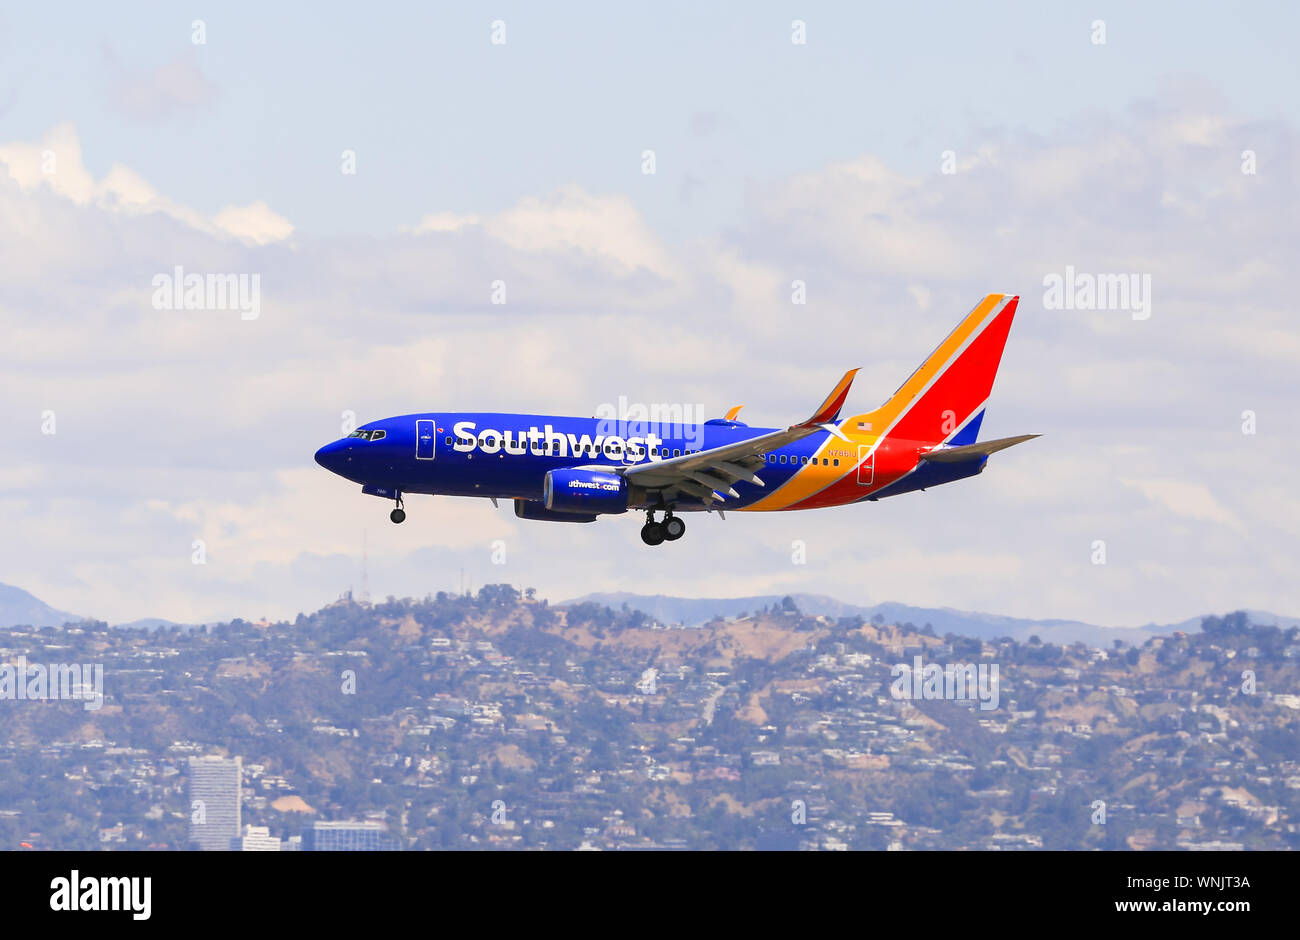 Los Angeles, California, USA - May 22, 2019: A Southwest Boeing 737 lands on the Los Angeles International Airport (LAX). Stock Photo